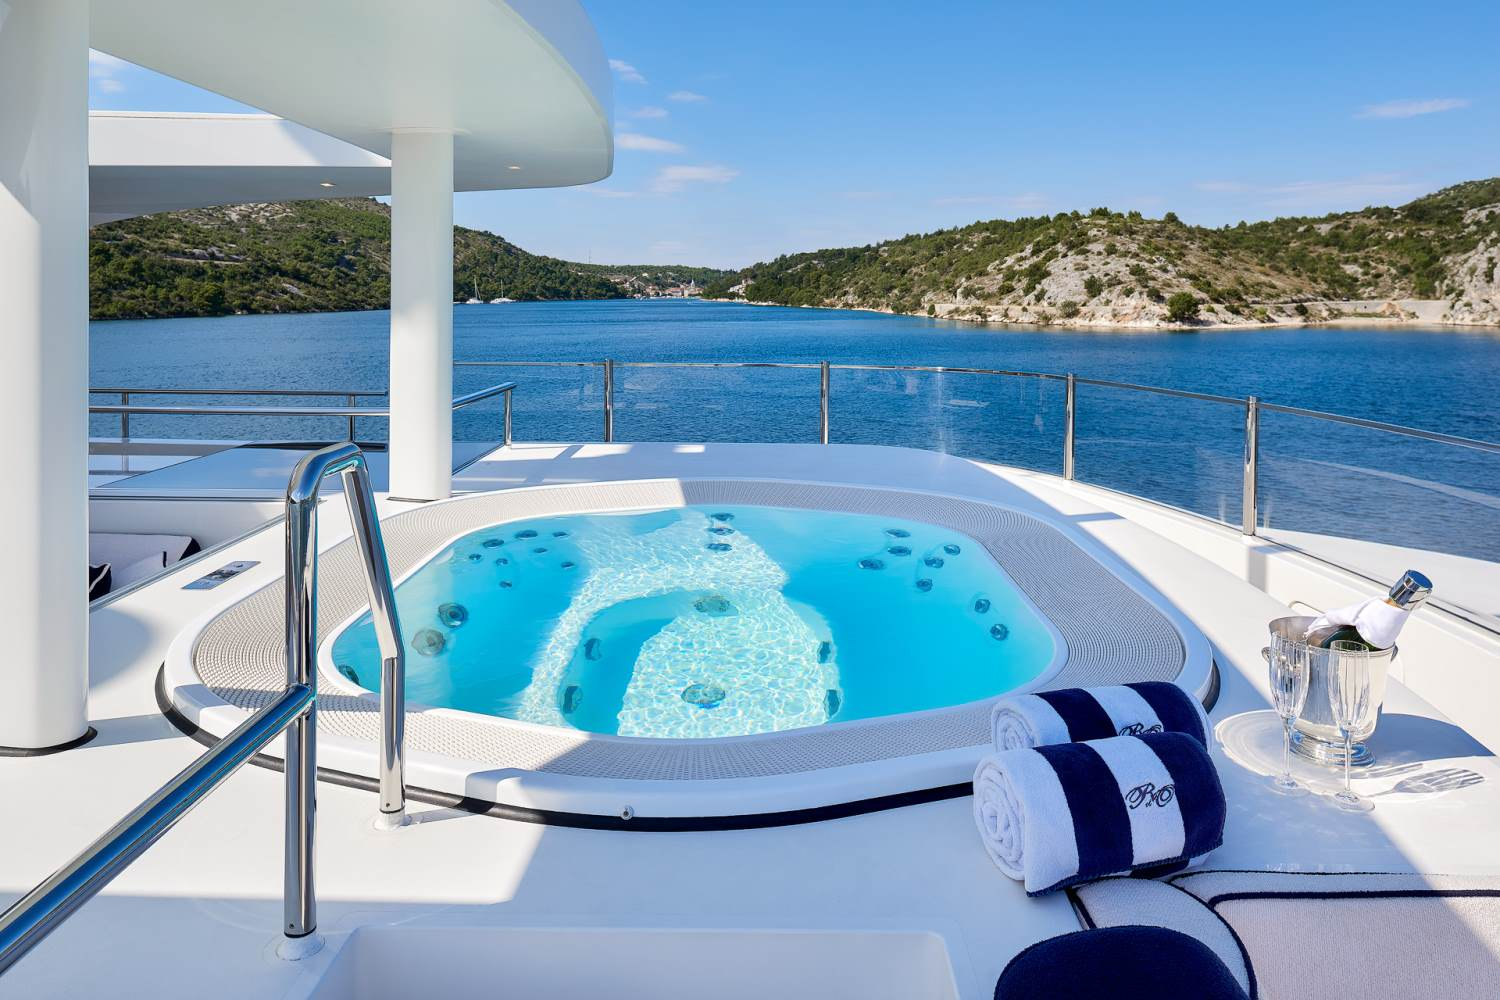 Yacht REVE D'OR By Sanlorenzo - Hot Tub Jacuzzi On Sundeck